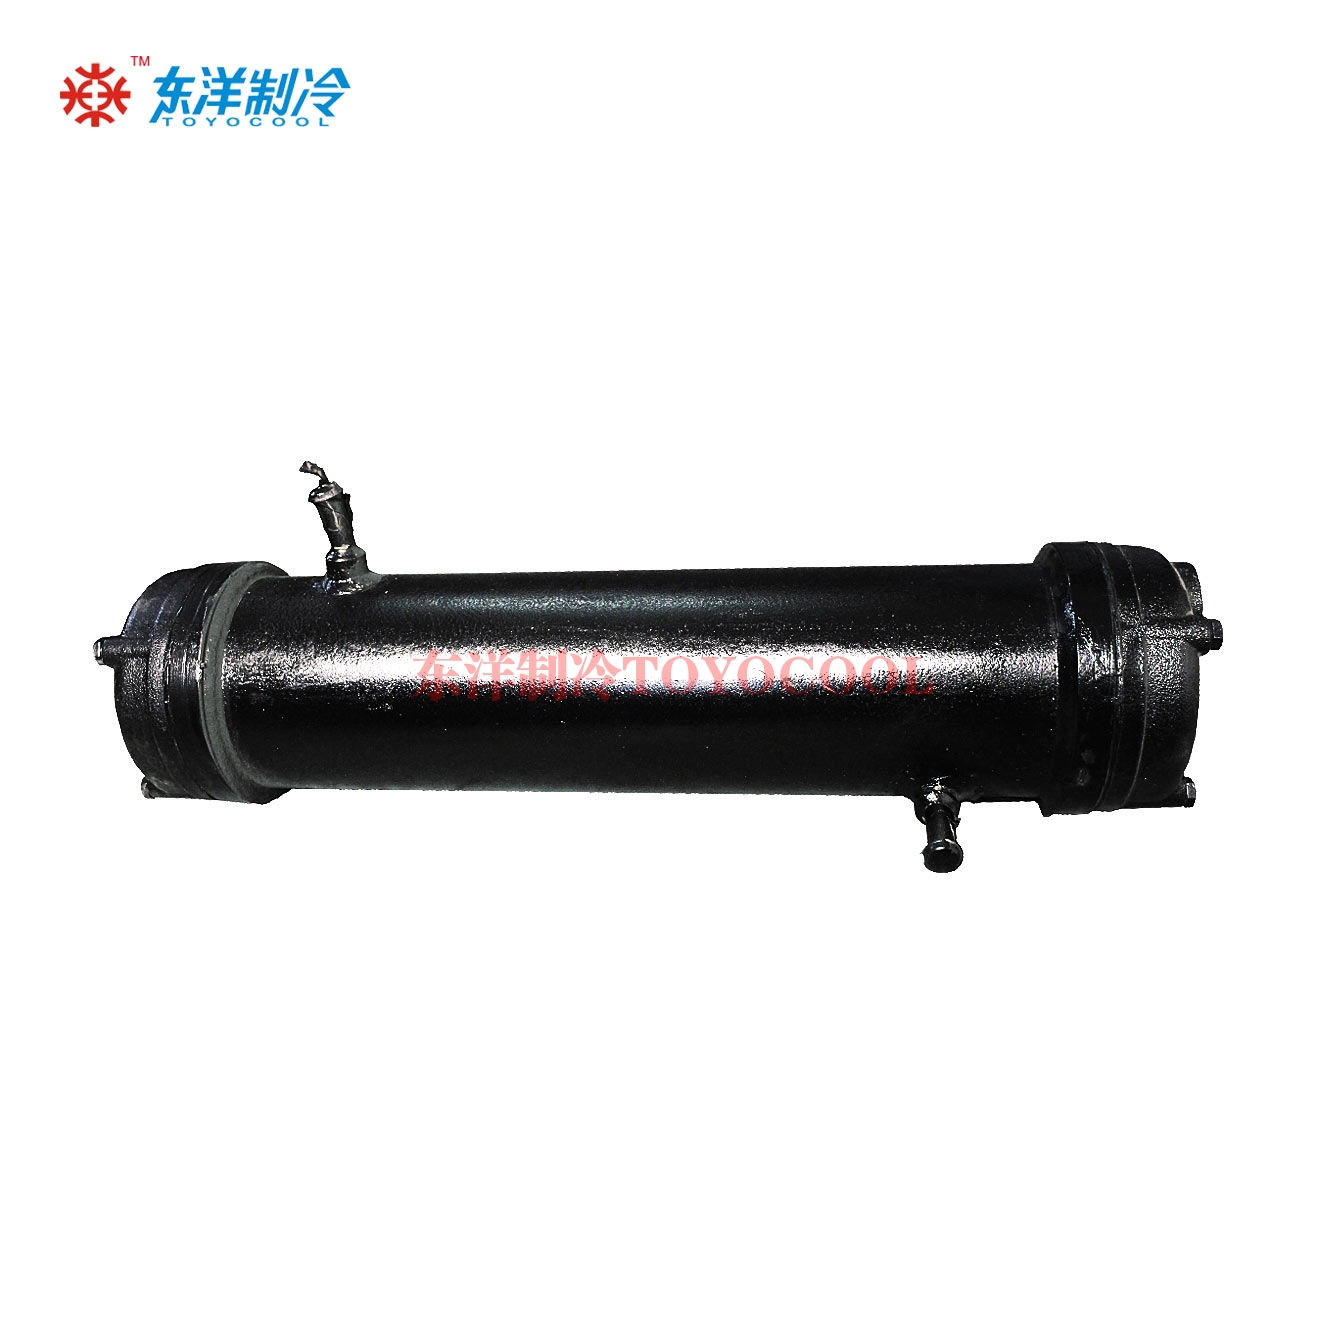 http://www.tychiller.com/data/images/product/20180703154850_290.jpg